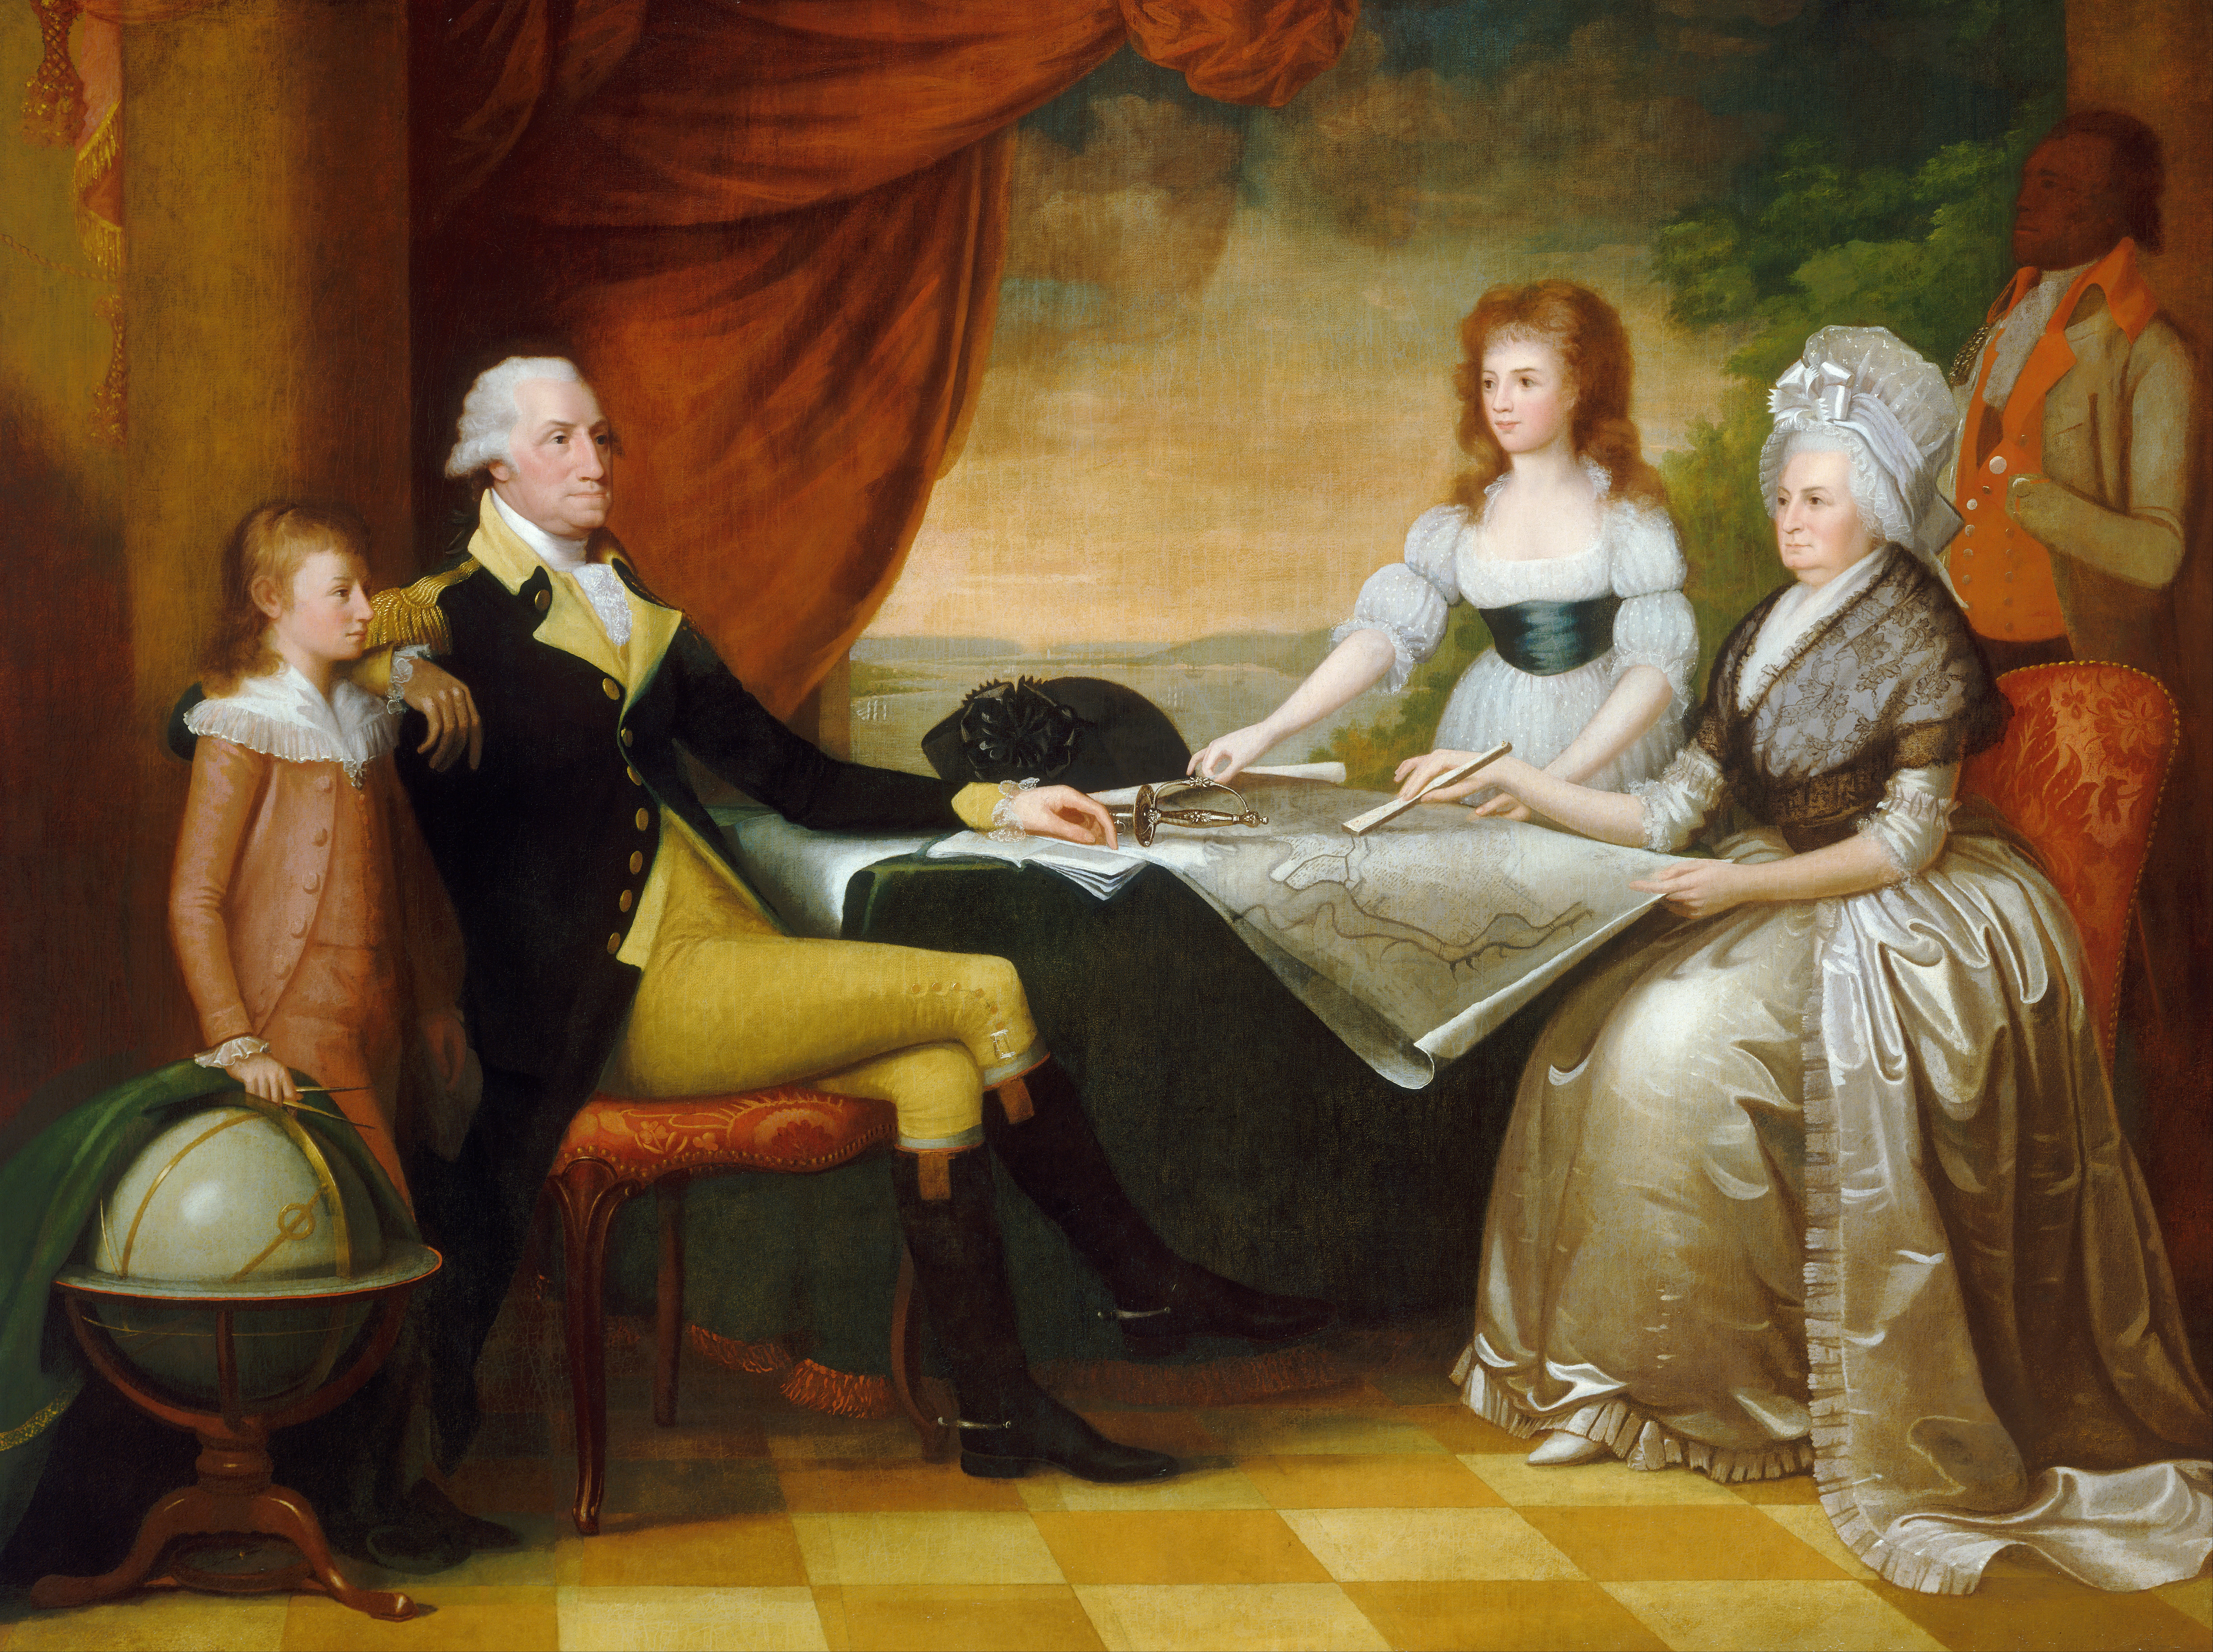 The Washington Family by Edward Savage, painted between 1789 and 1796, shows (from left to right): George Washington Parke Custis, George Washington, Eleanor Parke Custis, Martha Washington, and an enslaved servant: probably William Lee or Christopher Sheels.